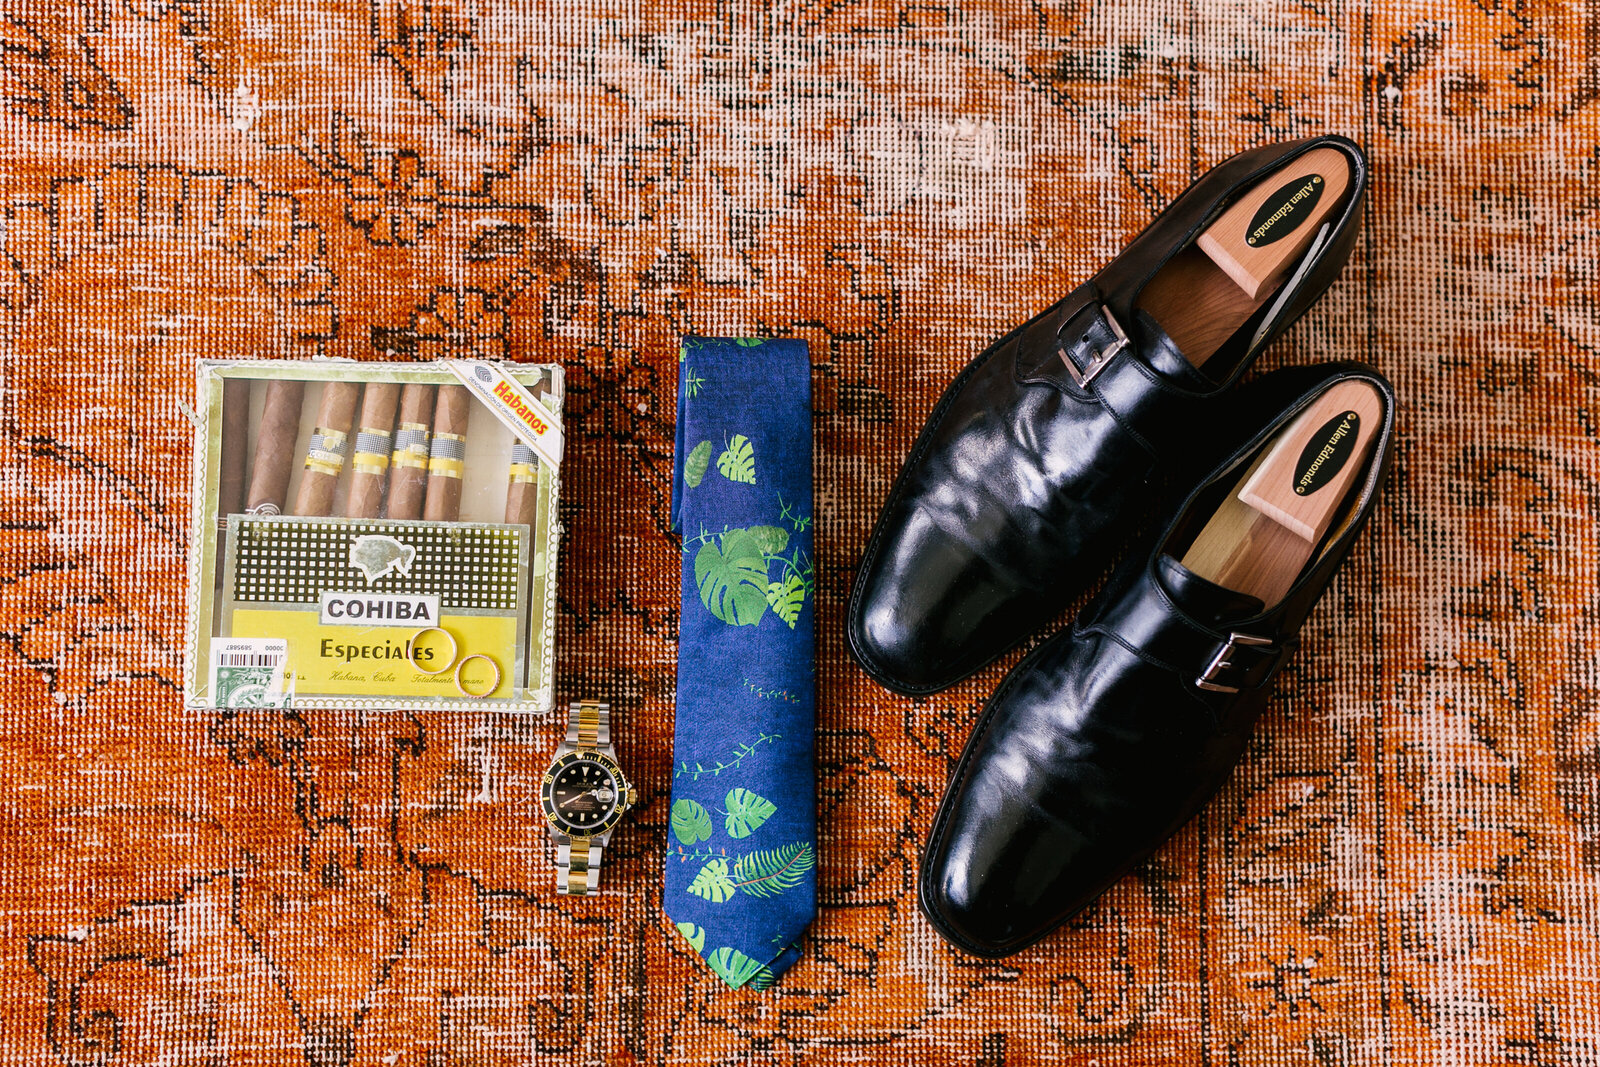 grooms details with tie and cigars